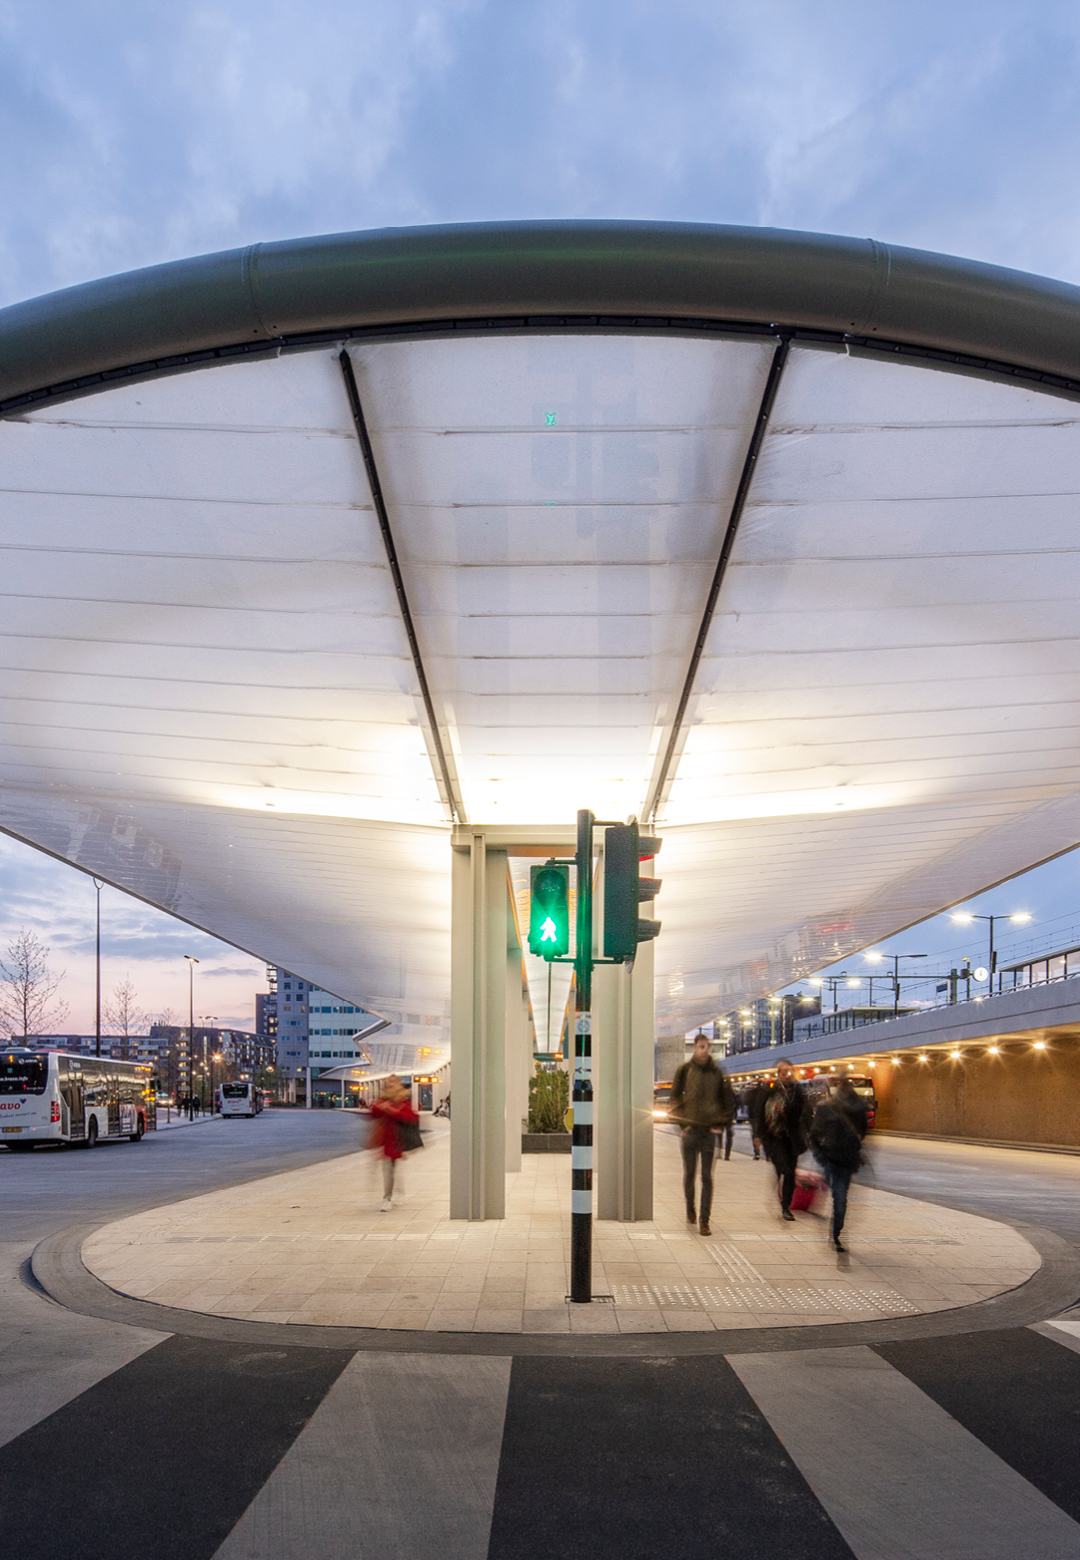 The Tilburg bus station designed by Cepezed is a sustainable facility that generates its own energy| Tilburg Bus Station| Cepezed| STIR